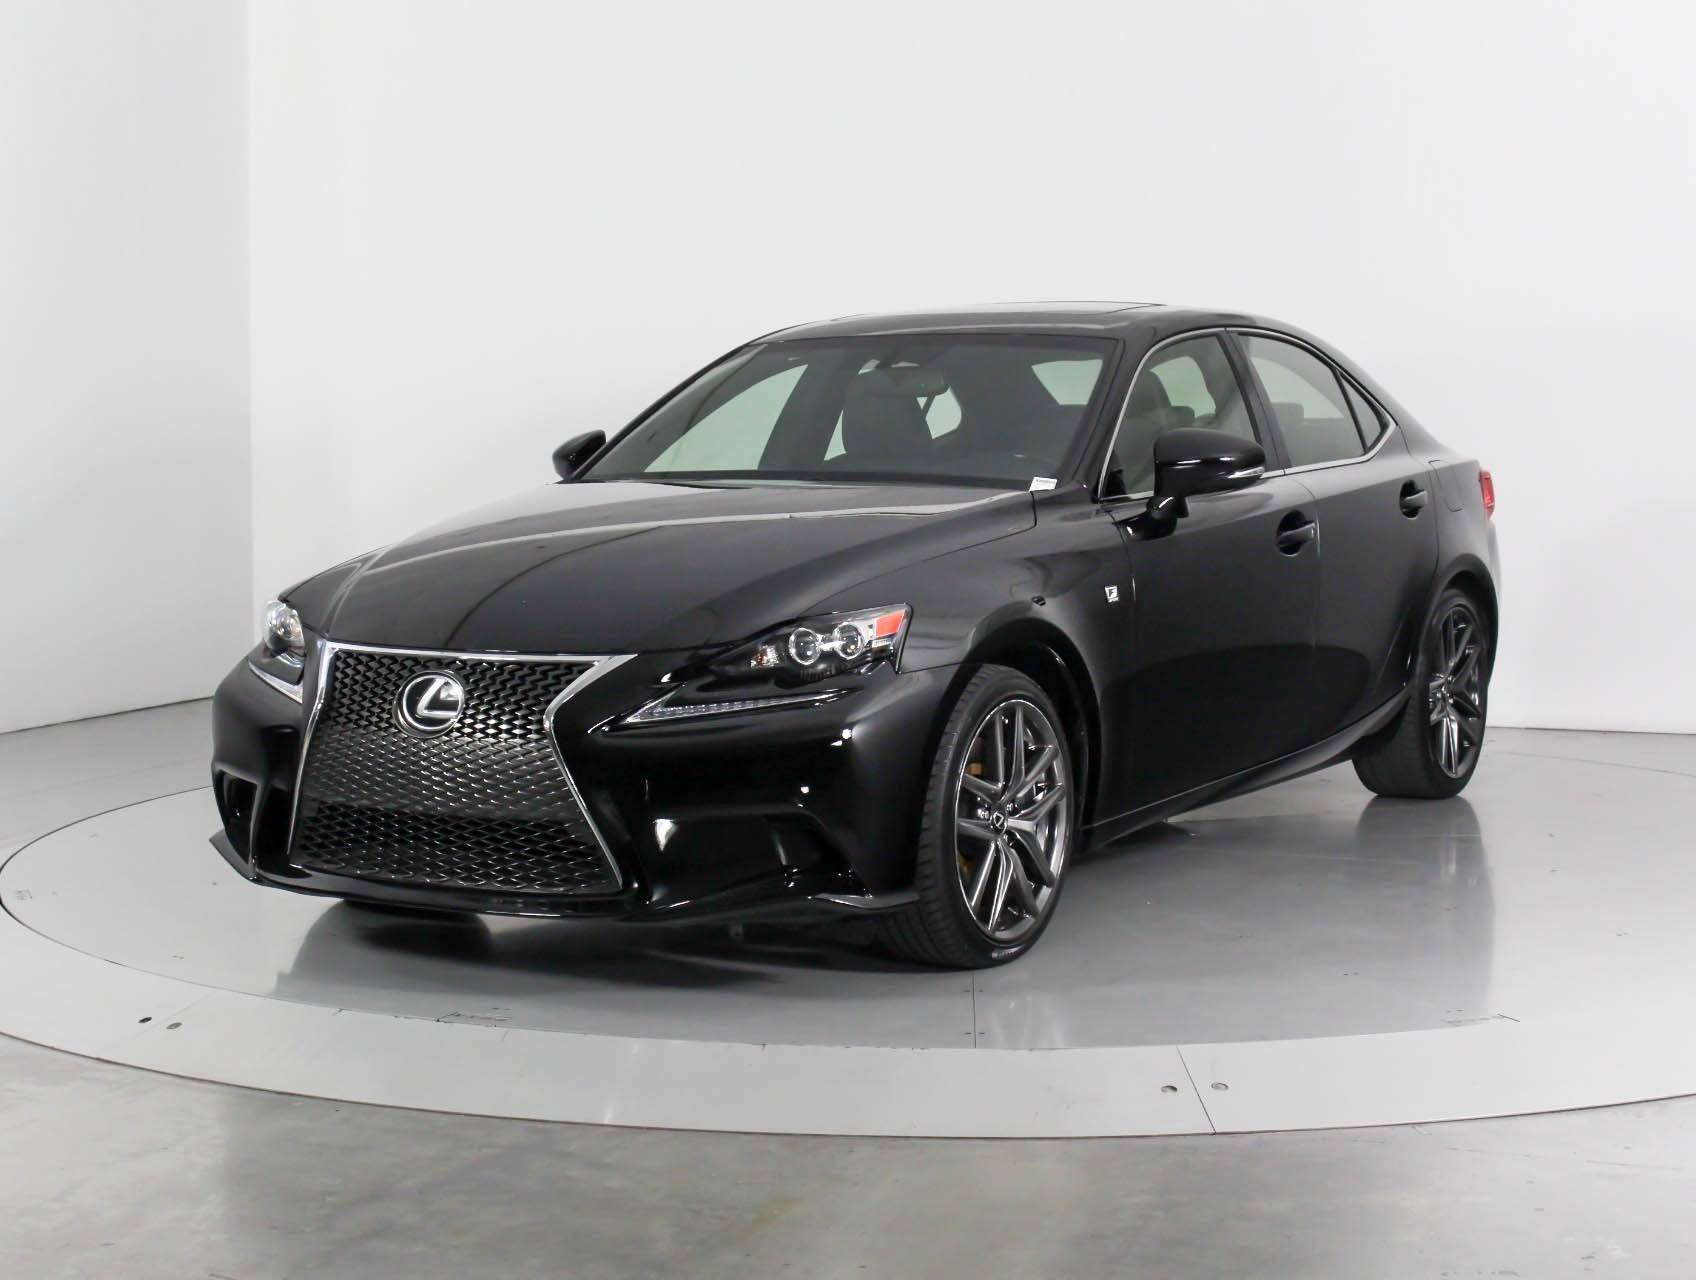 Used Cars for Sale Near Me Lexus New Used 2016 Lexus is 200t F Sport Sedan for Sale In Margate Fl